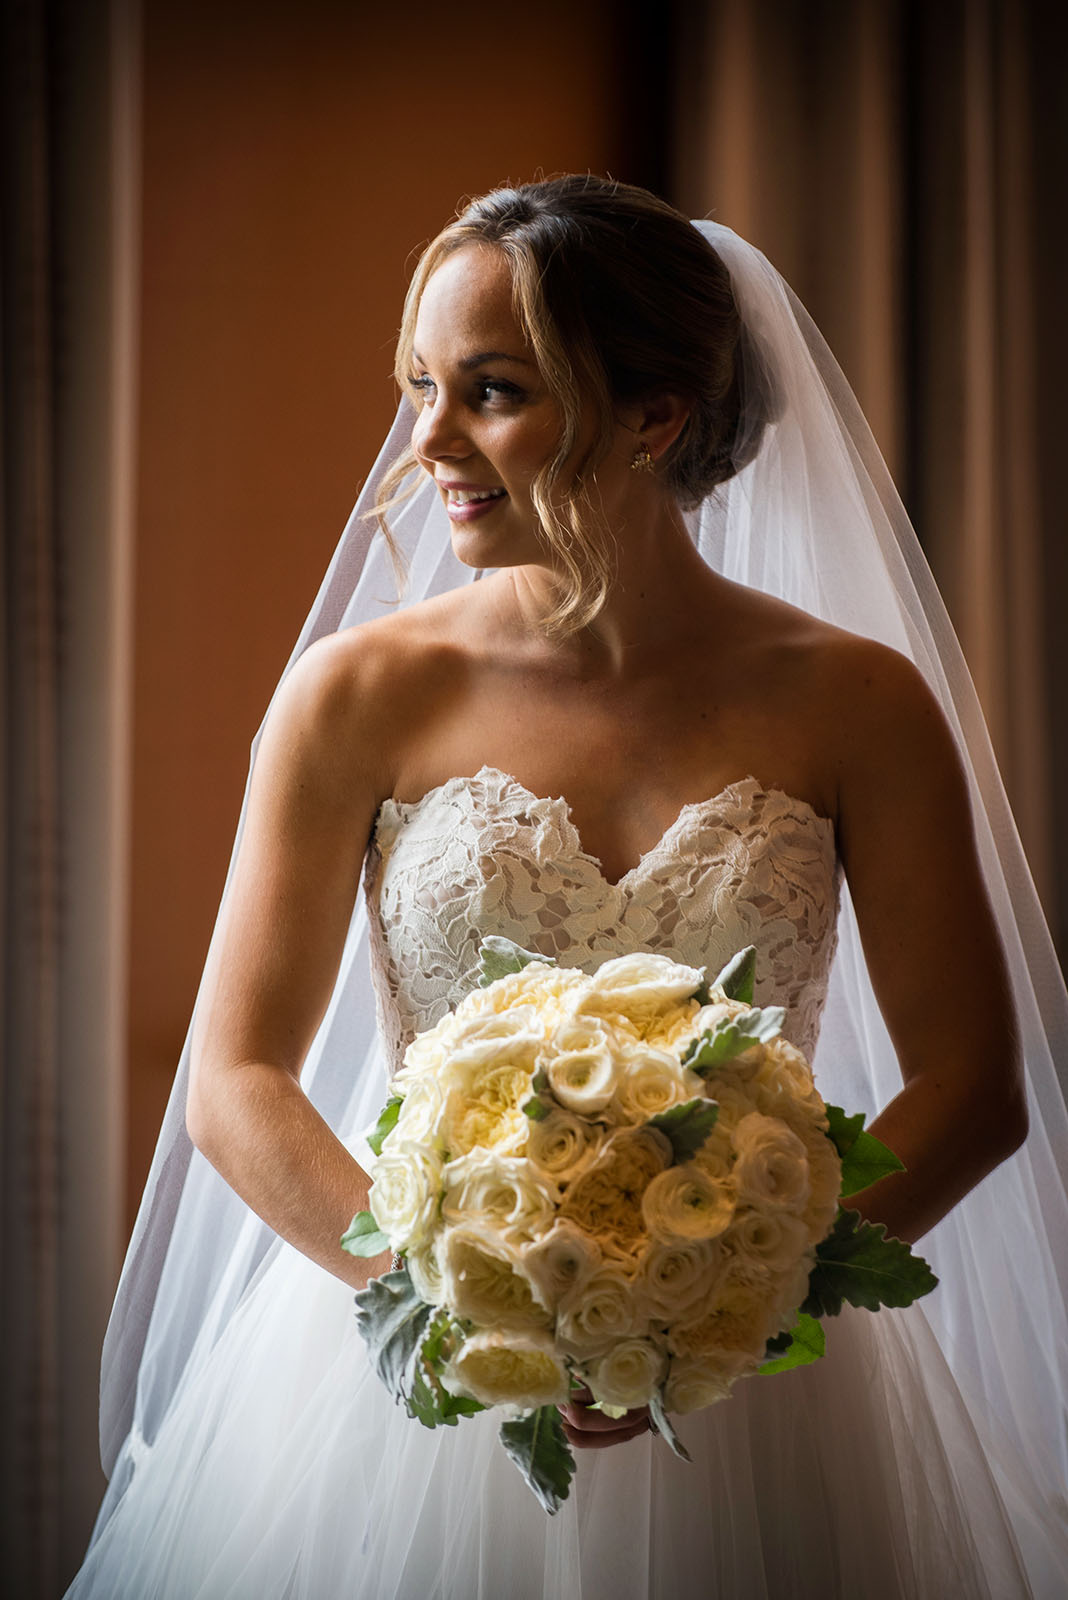 beautiful bride hotel orrington Evanston Illinois